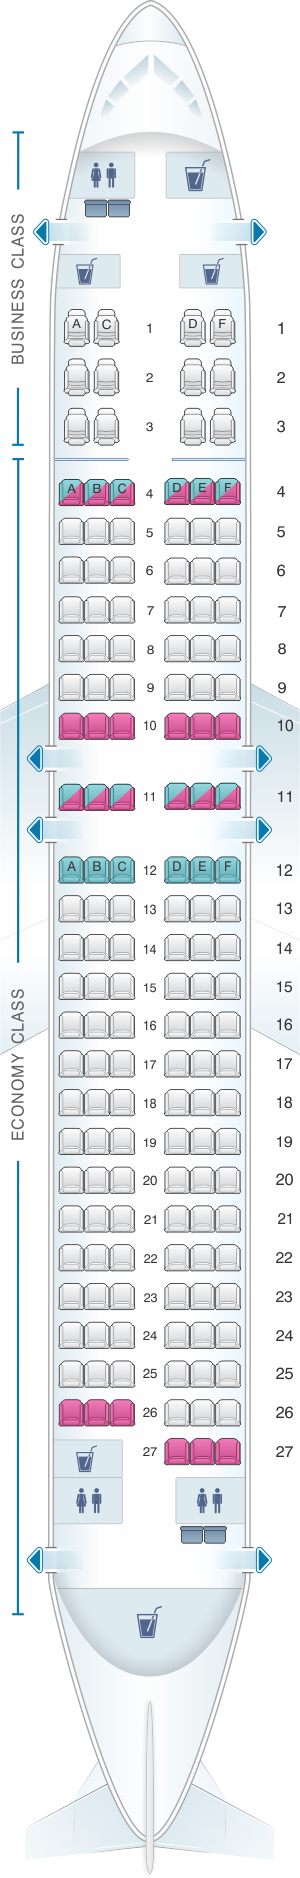 Airbus Industrie A340 300 Seat Map Breaking News